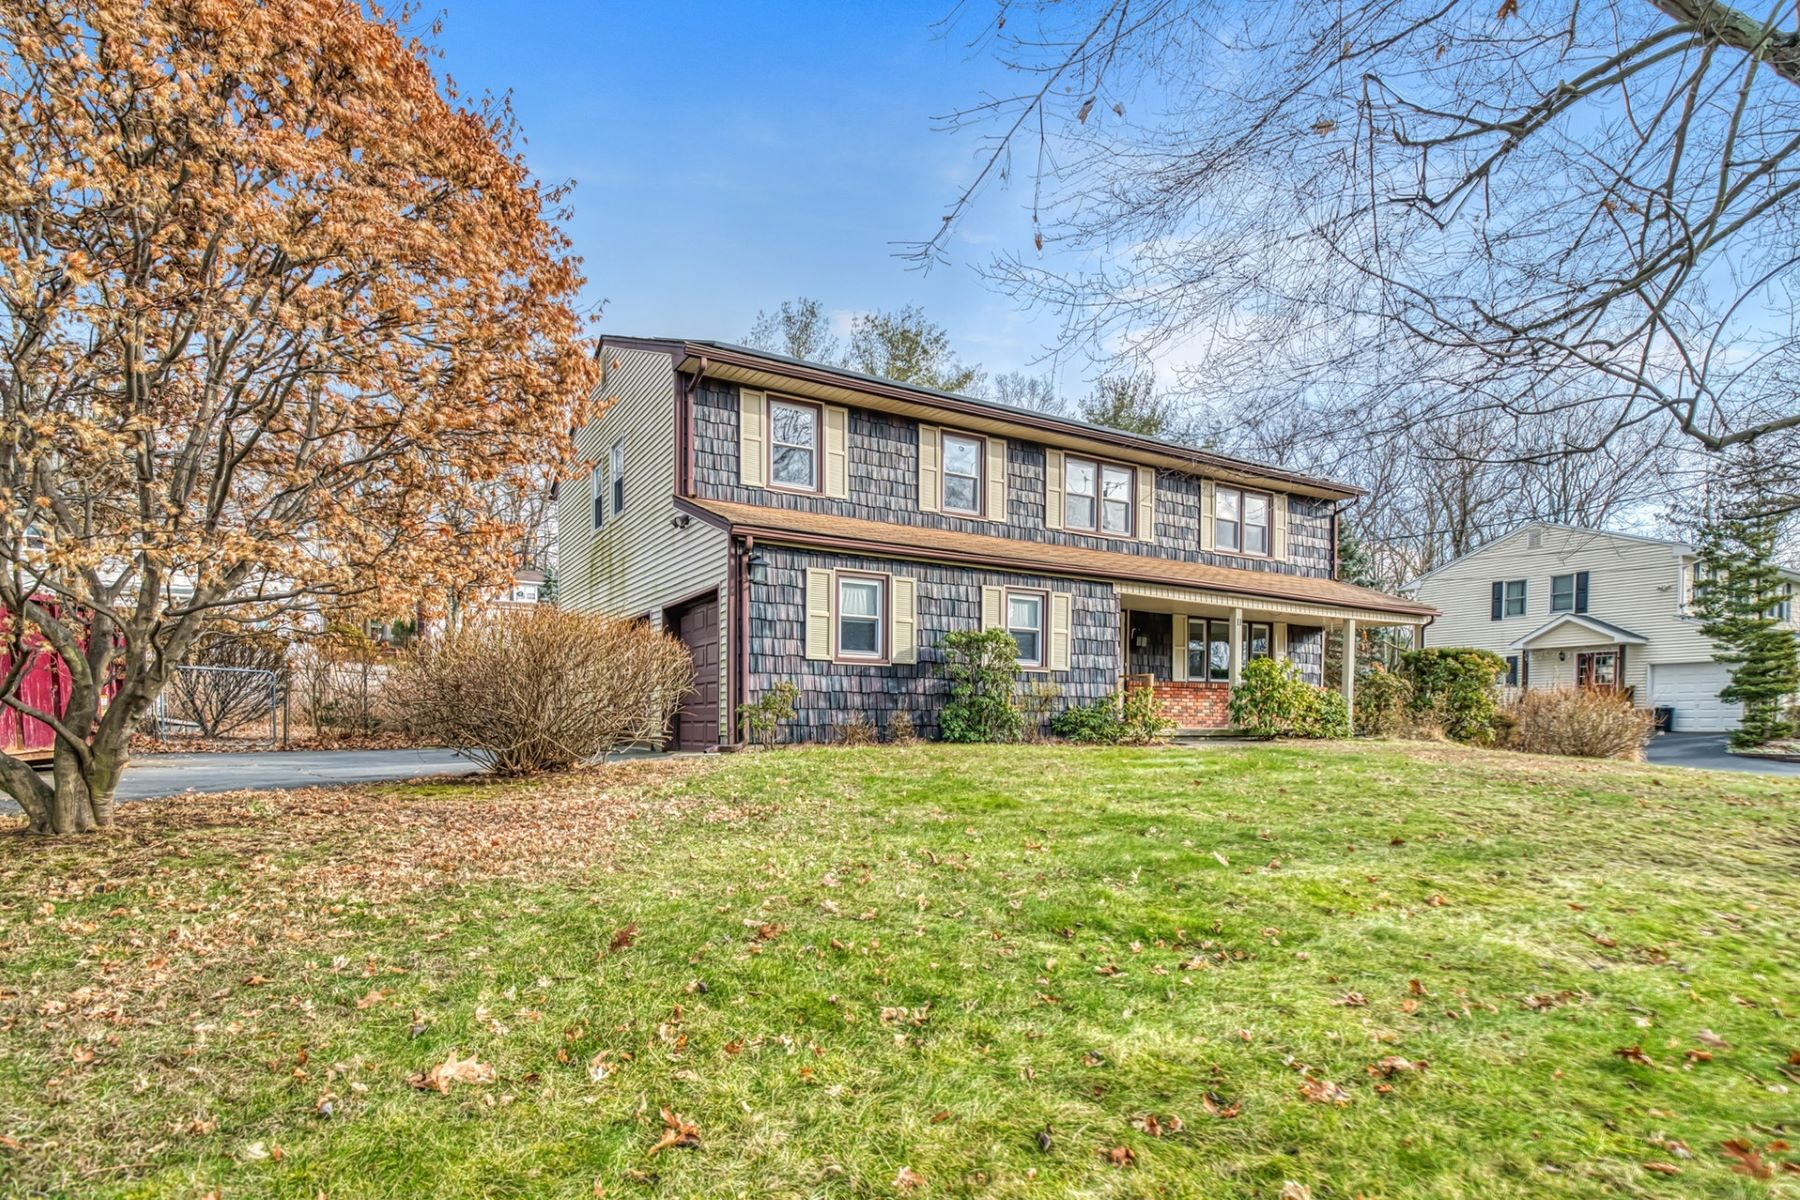 Single Family Homes for Active at Exceptional Opportunity 11 Musket Rd Tappan, New York 10983 United States